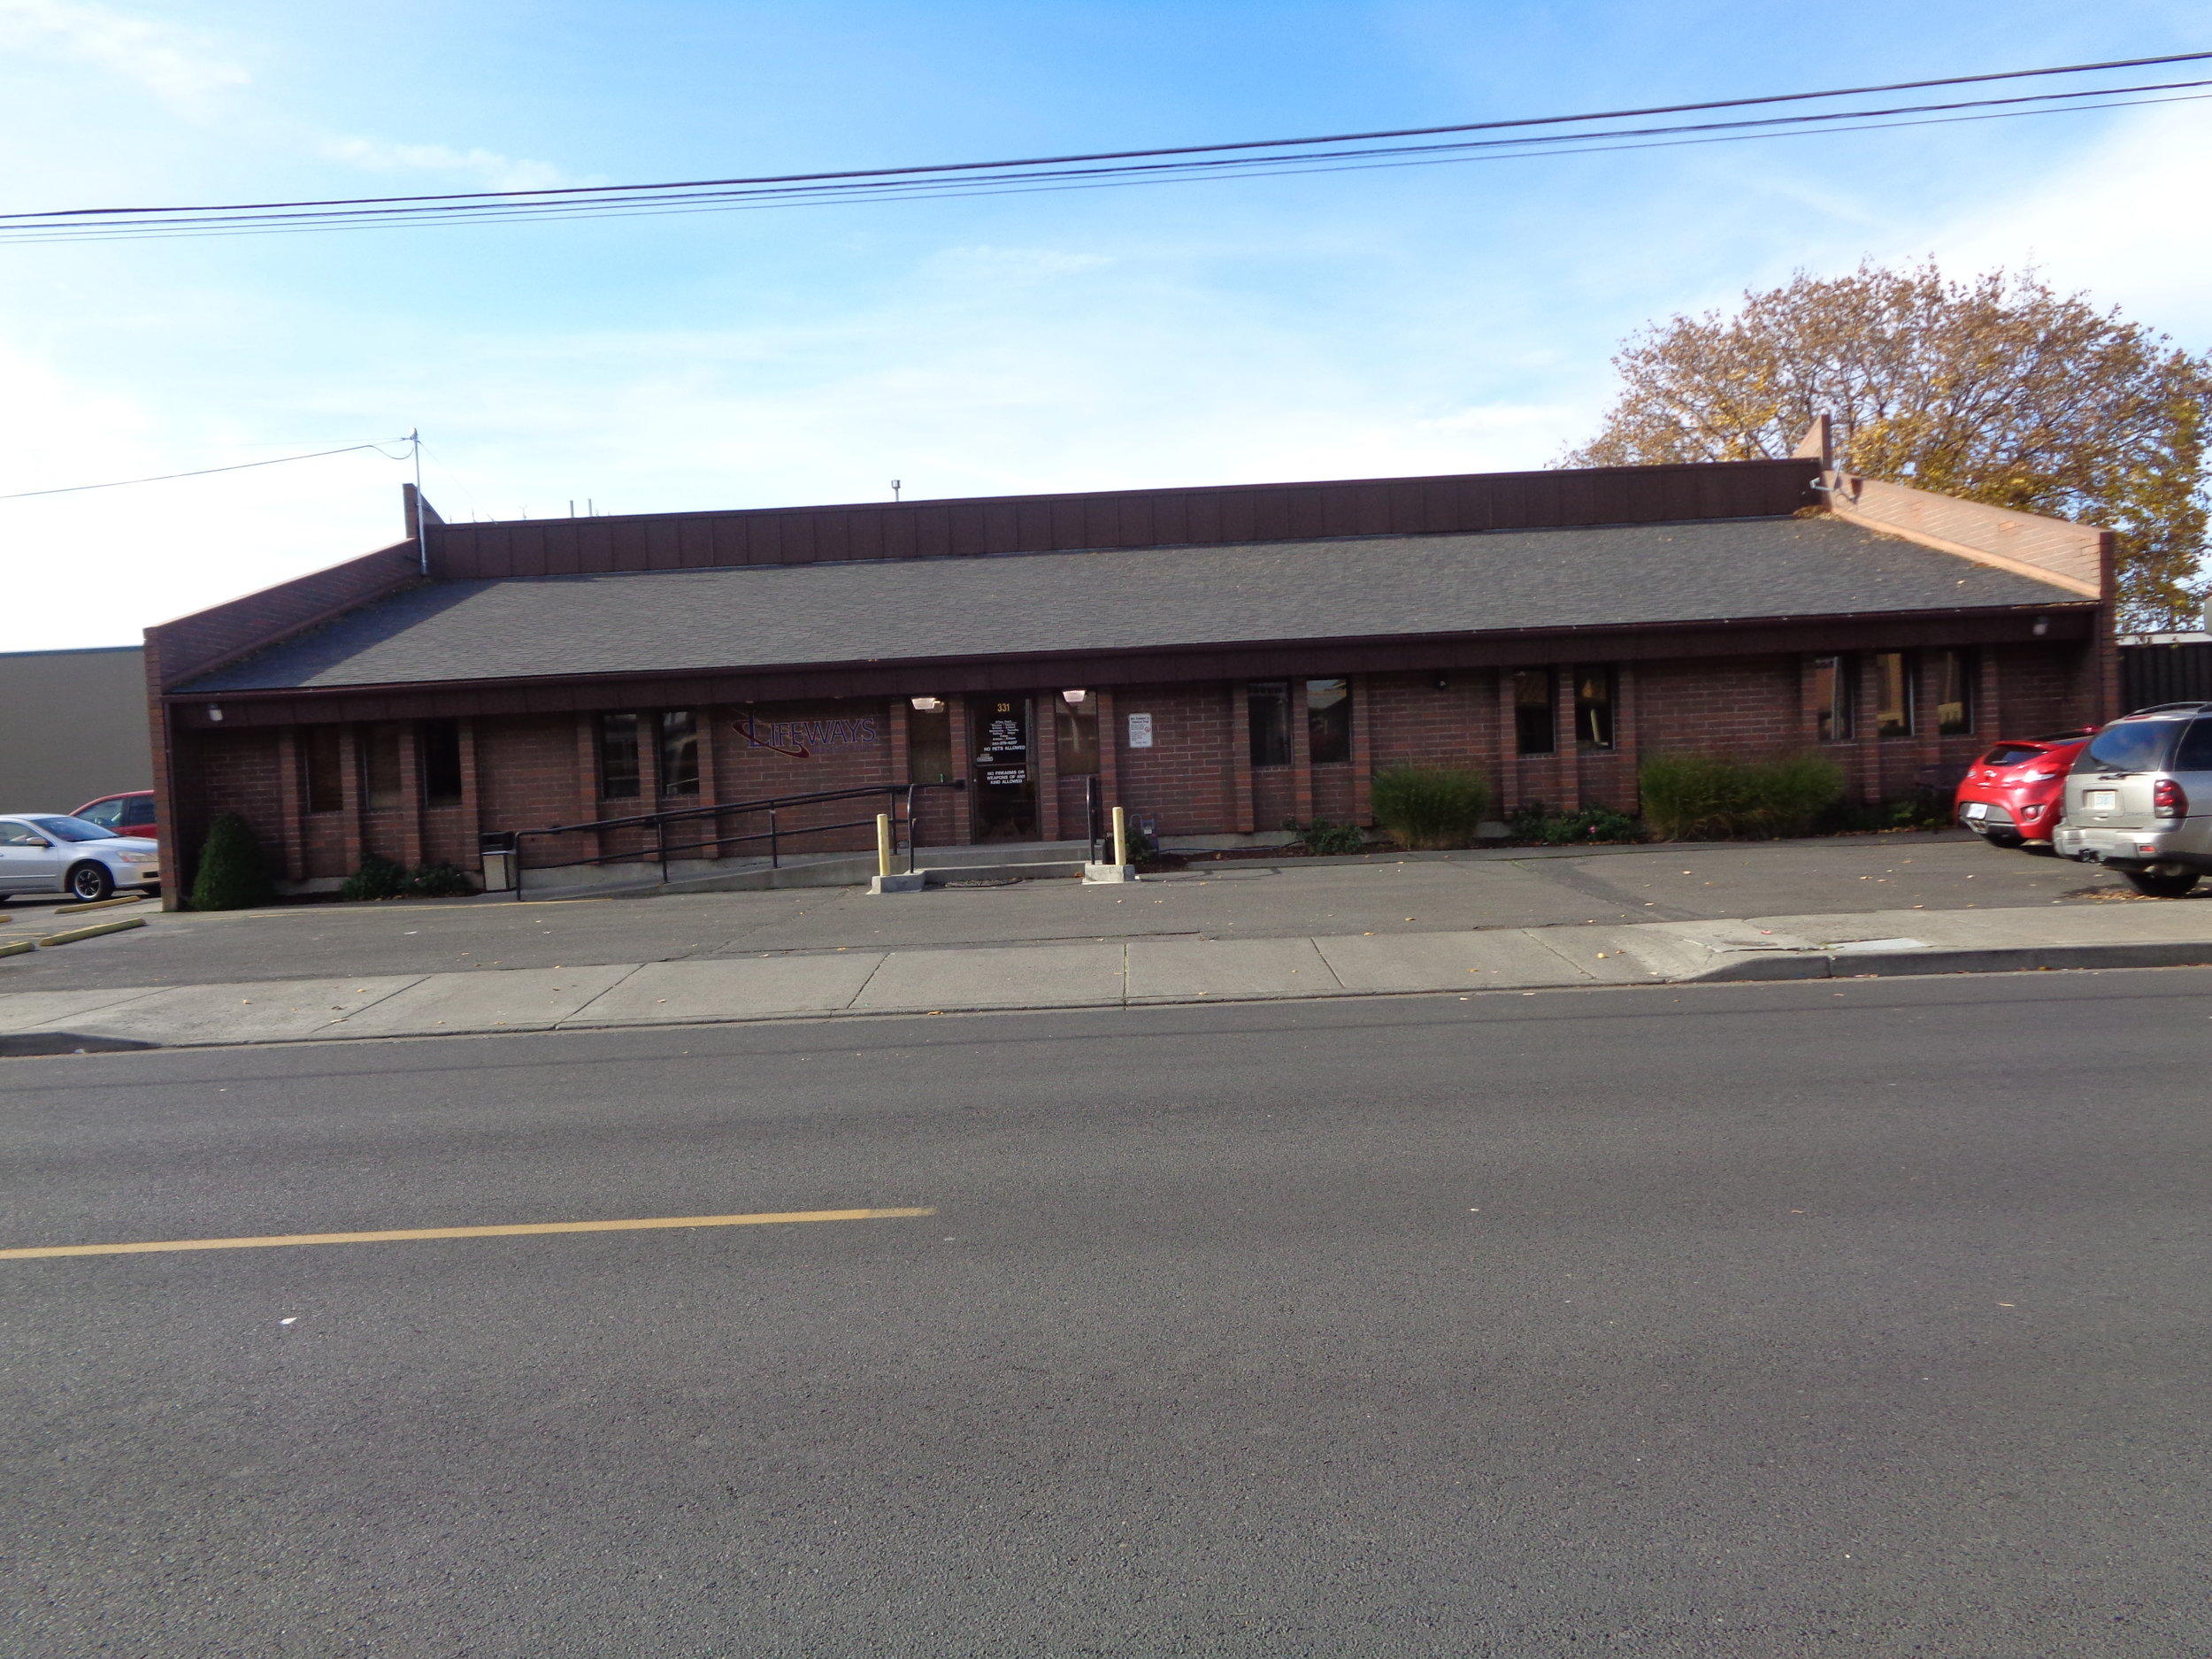 - Lifeways Mental Health Services, which was originally called Malheur County Mental Health, were established in 1964 to serve the residents of Malheur County (a large county of 10,000 square miles in Southeast Oregon). Prior to that time, residents most often had to seek mental health services from a private physician or seek services in Boise, Idaho. In 1997, Lifeways, Inc. was established as a for-profit mental health provider and began serving residents of Umatilla County from offices in Pendleton. Lifeways currently has 200 staff members who provide comprehensive behavioral health services including substance abuse treatment in Malheur County. Services within Umatilla County are limited to mental health services.